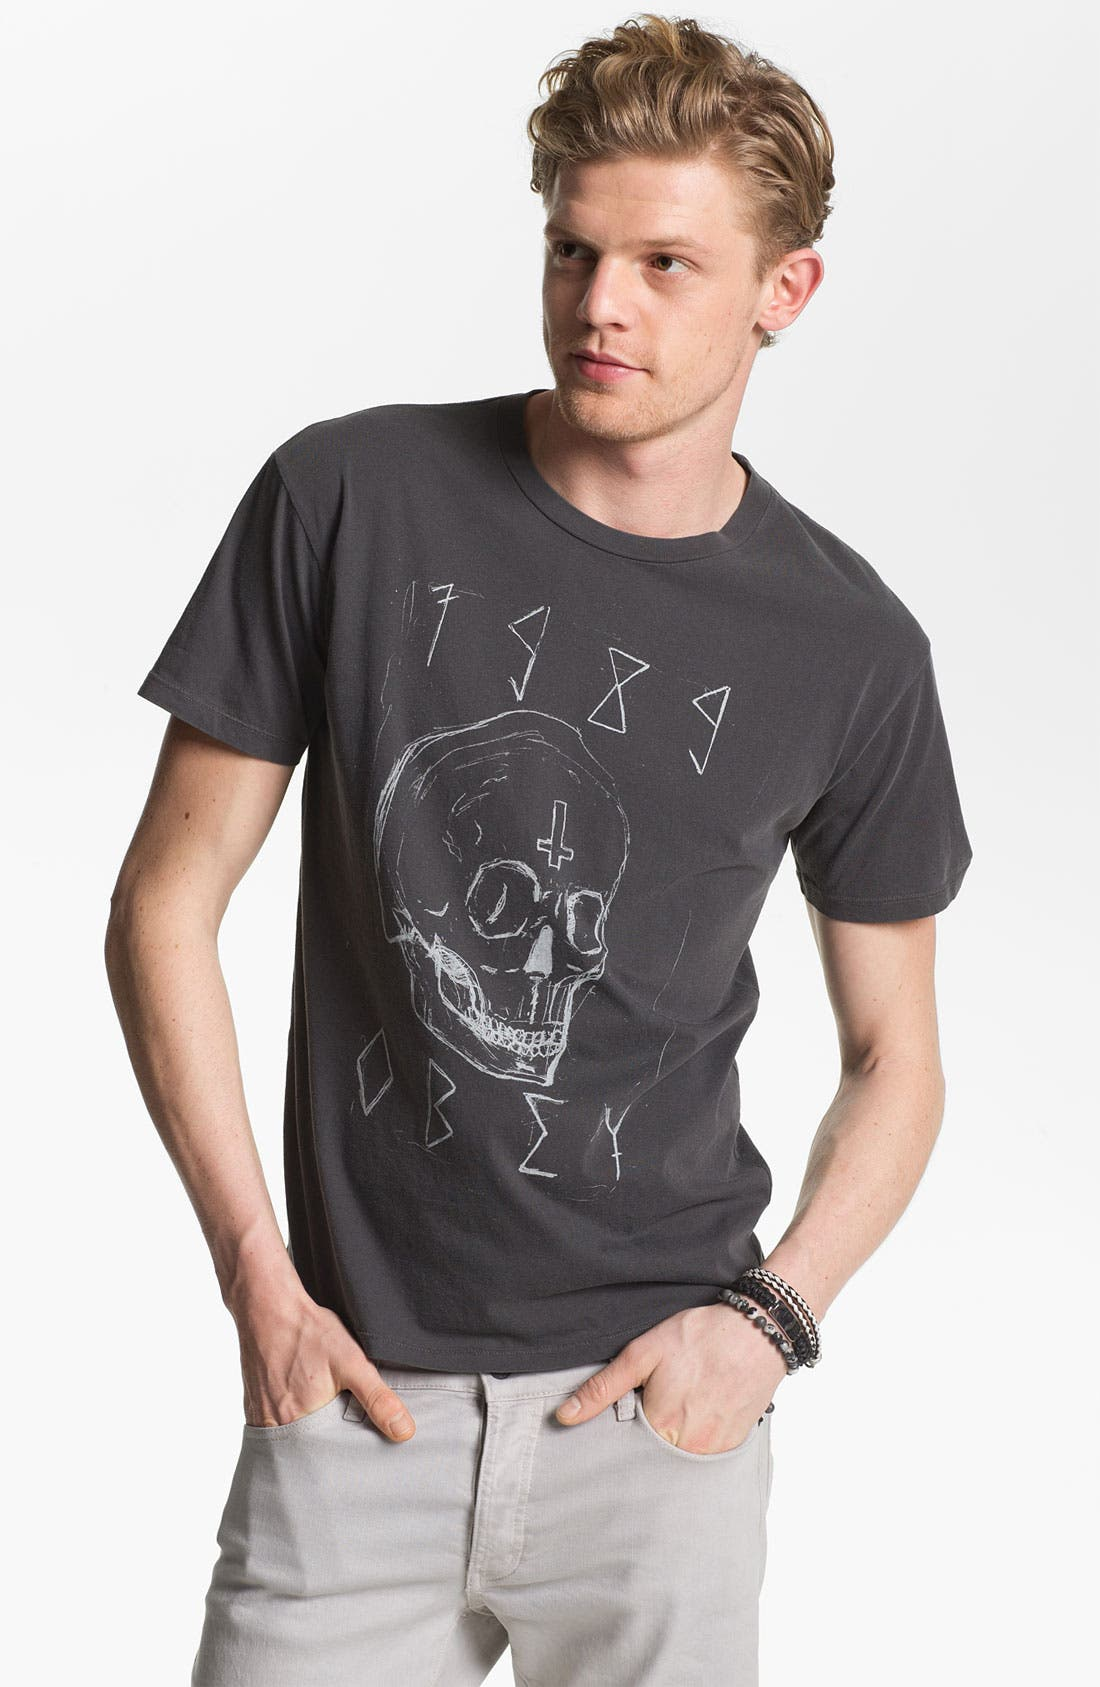 Main Image - Obey 'Deadly Skull' Graphic T-Shirt